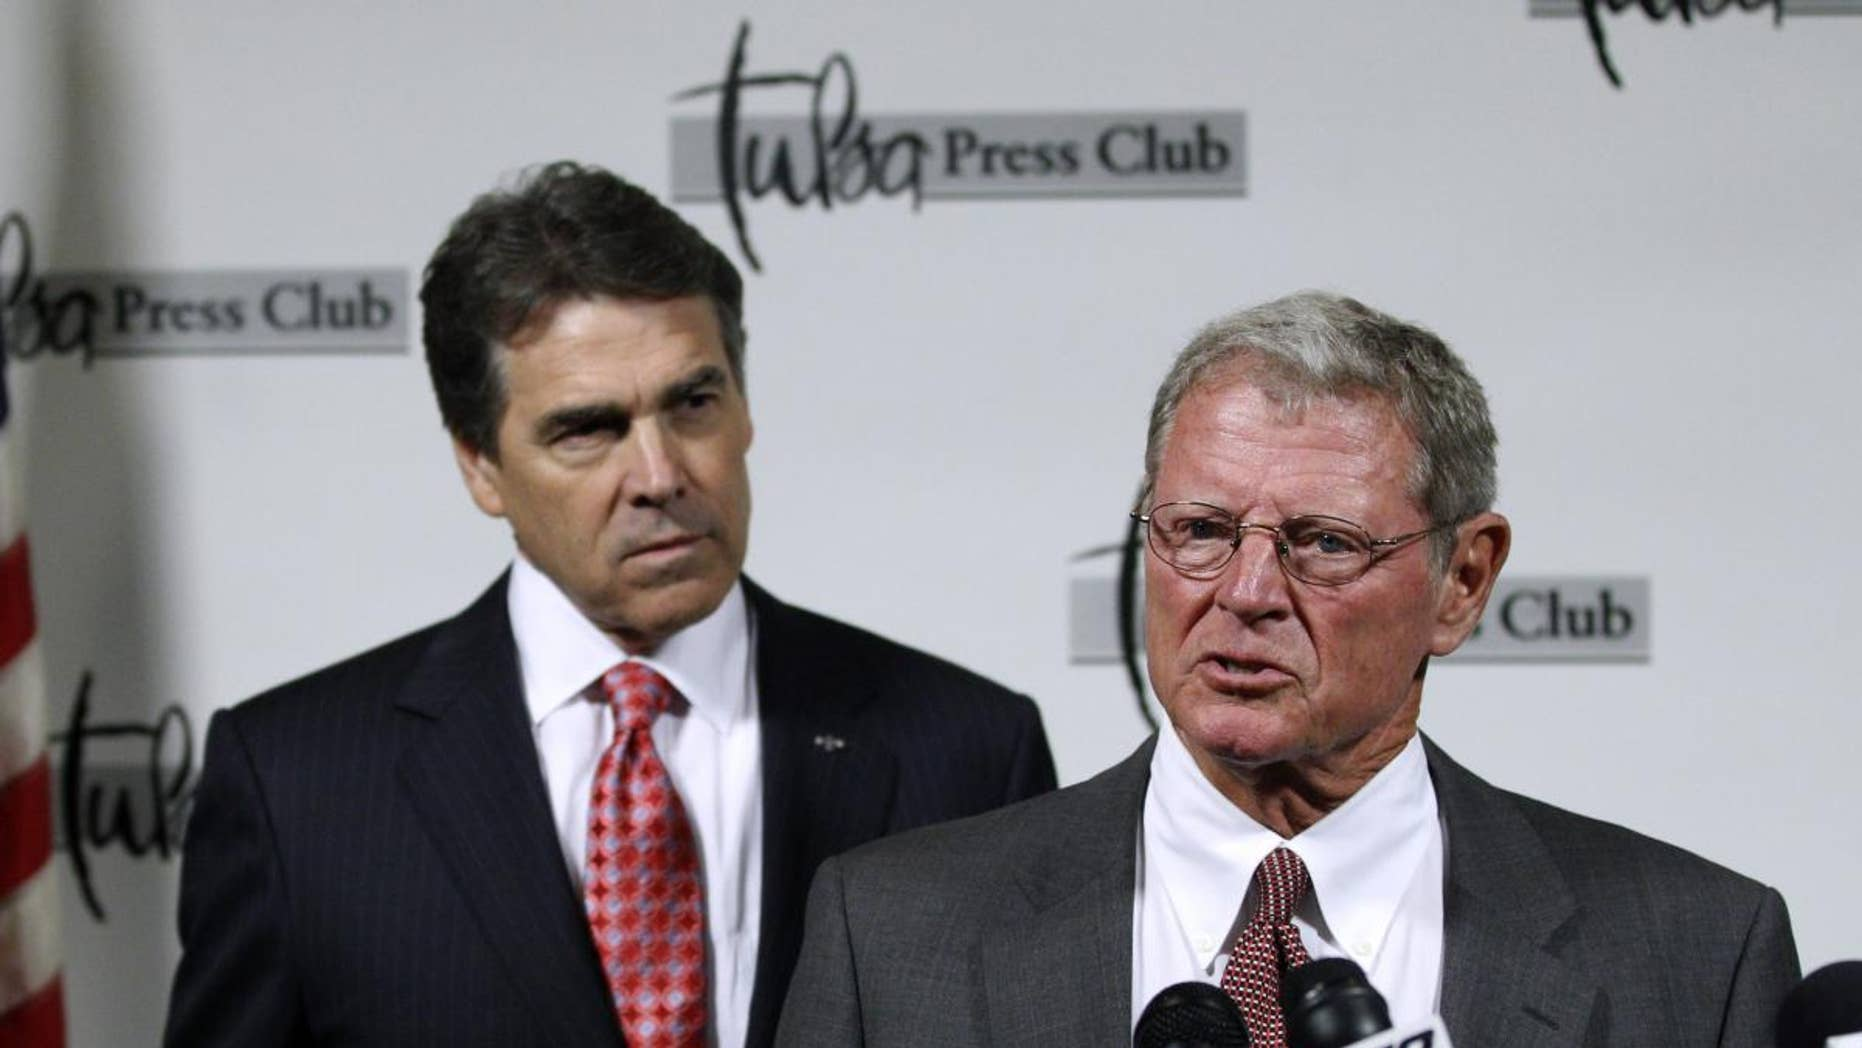 Sen. Jim Inhofe, R-Okla., right, introduces Republican presidential candidate, Texas Gov. Rick Perry, at a news conference in Tulsa, Okla., Monday, Aug. 29, 2011. (AP Photo/Sue Ogrocki)